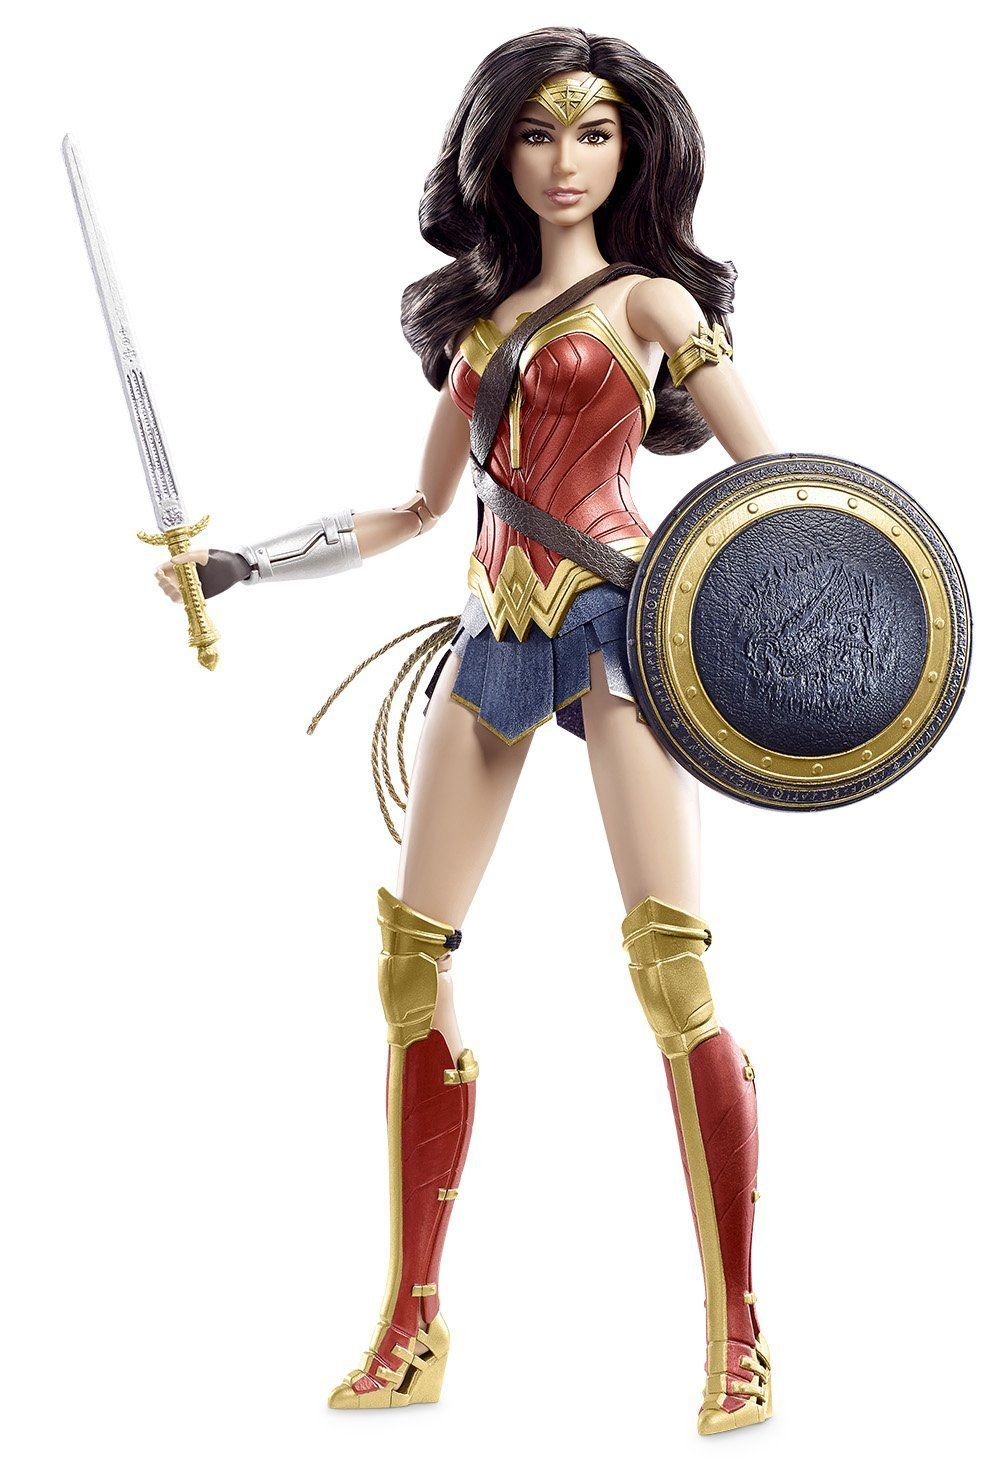 Doll review 2017 black label queen hippolyta doll face three - Amazon Com Barbie Collector Batman V Superman Dawn Of Justice Wonder Woman Doll